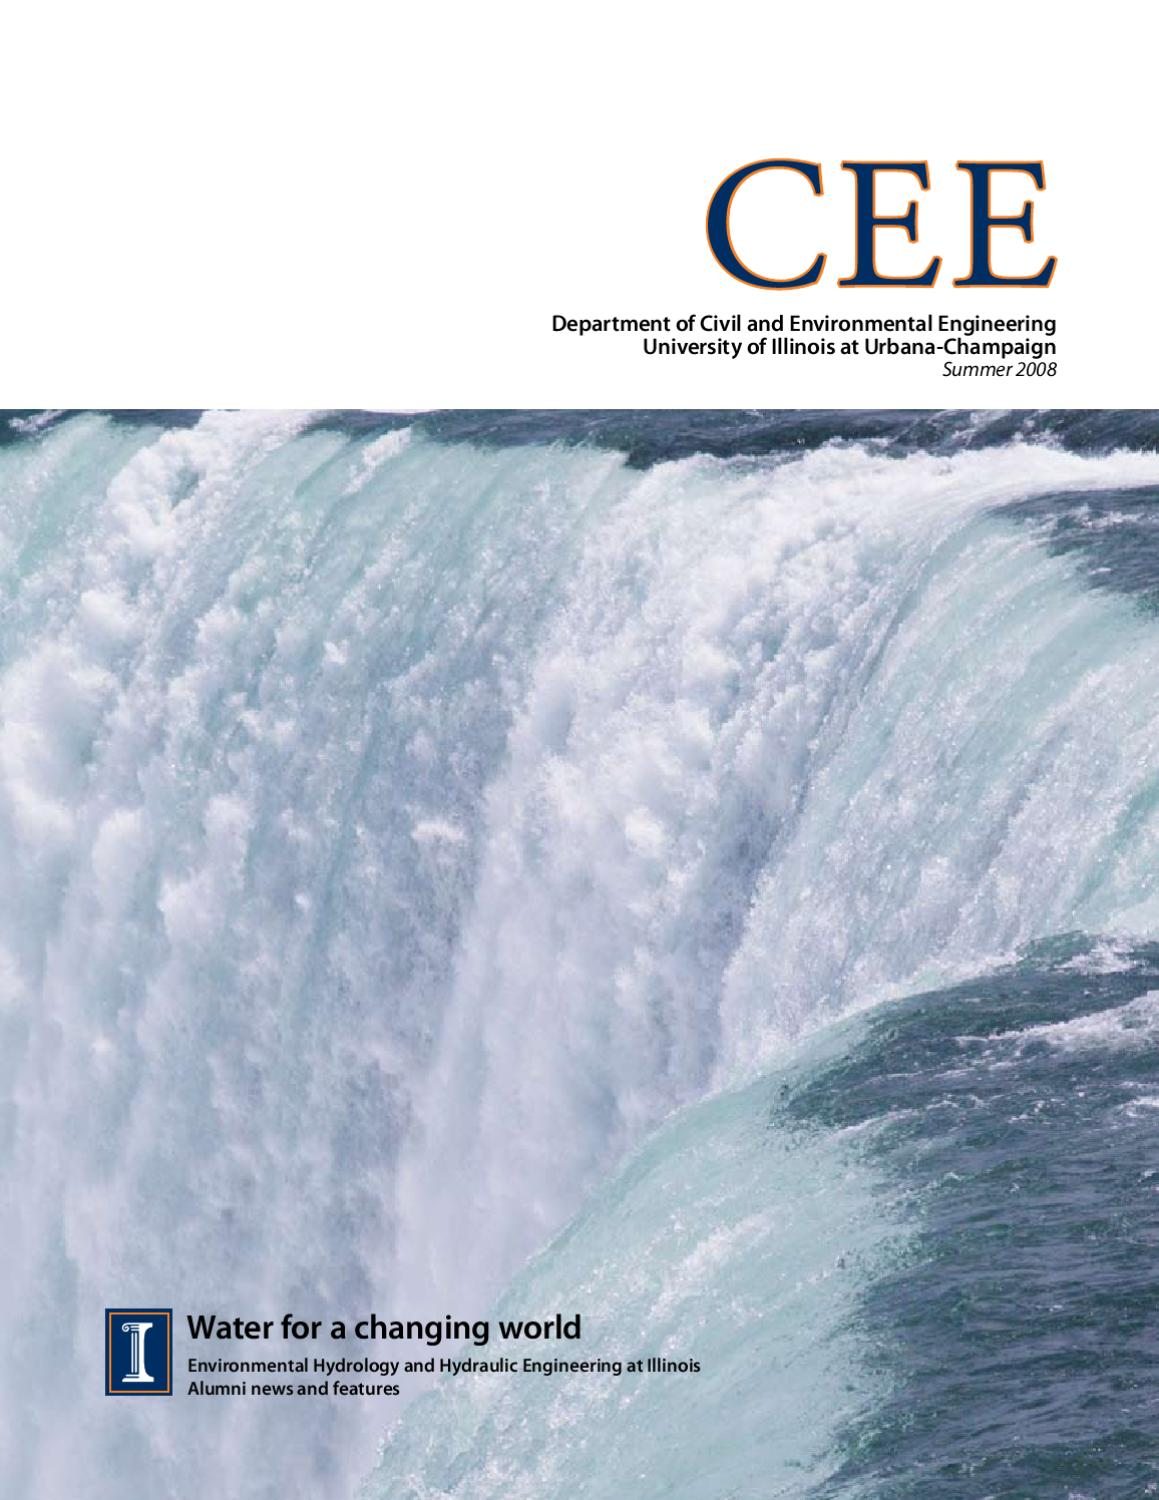 CEE Magazine Summer 2008 by Department of Civil and